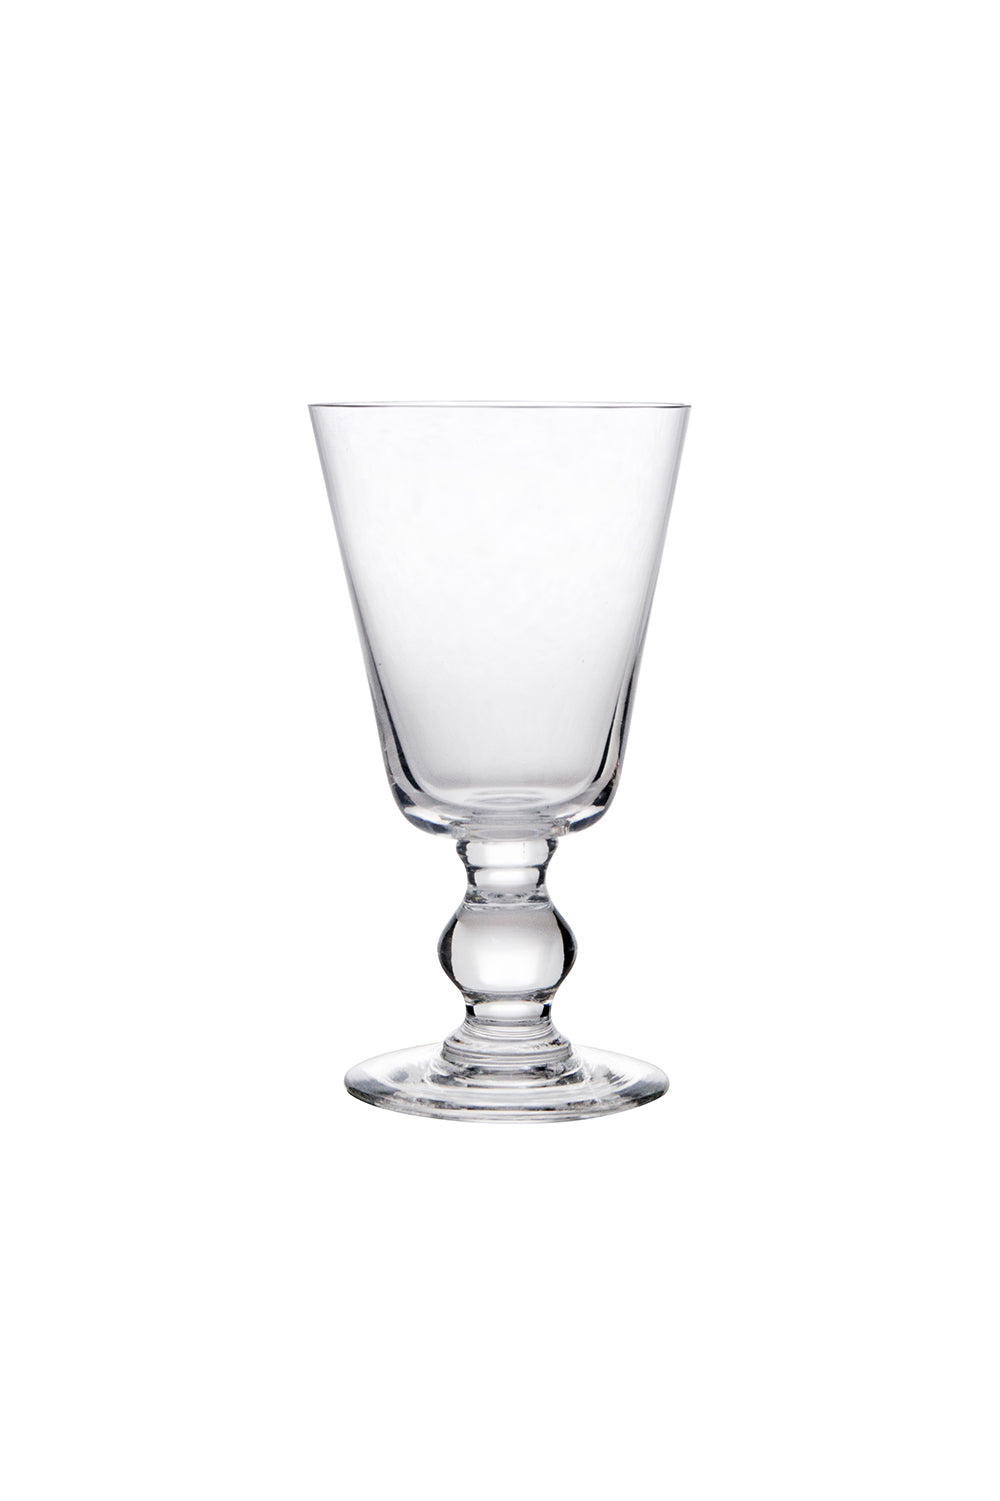 Bocage stem water glass, handmade in France by La Rochere glass blowers